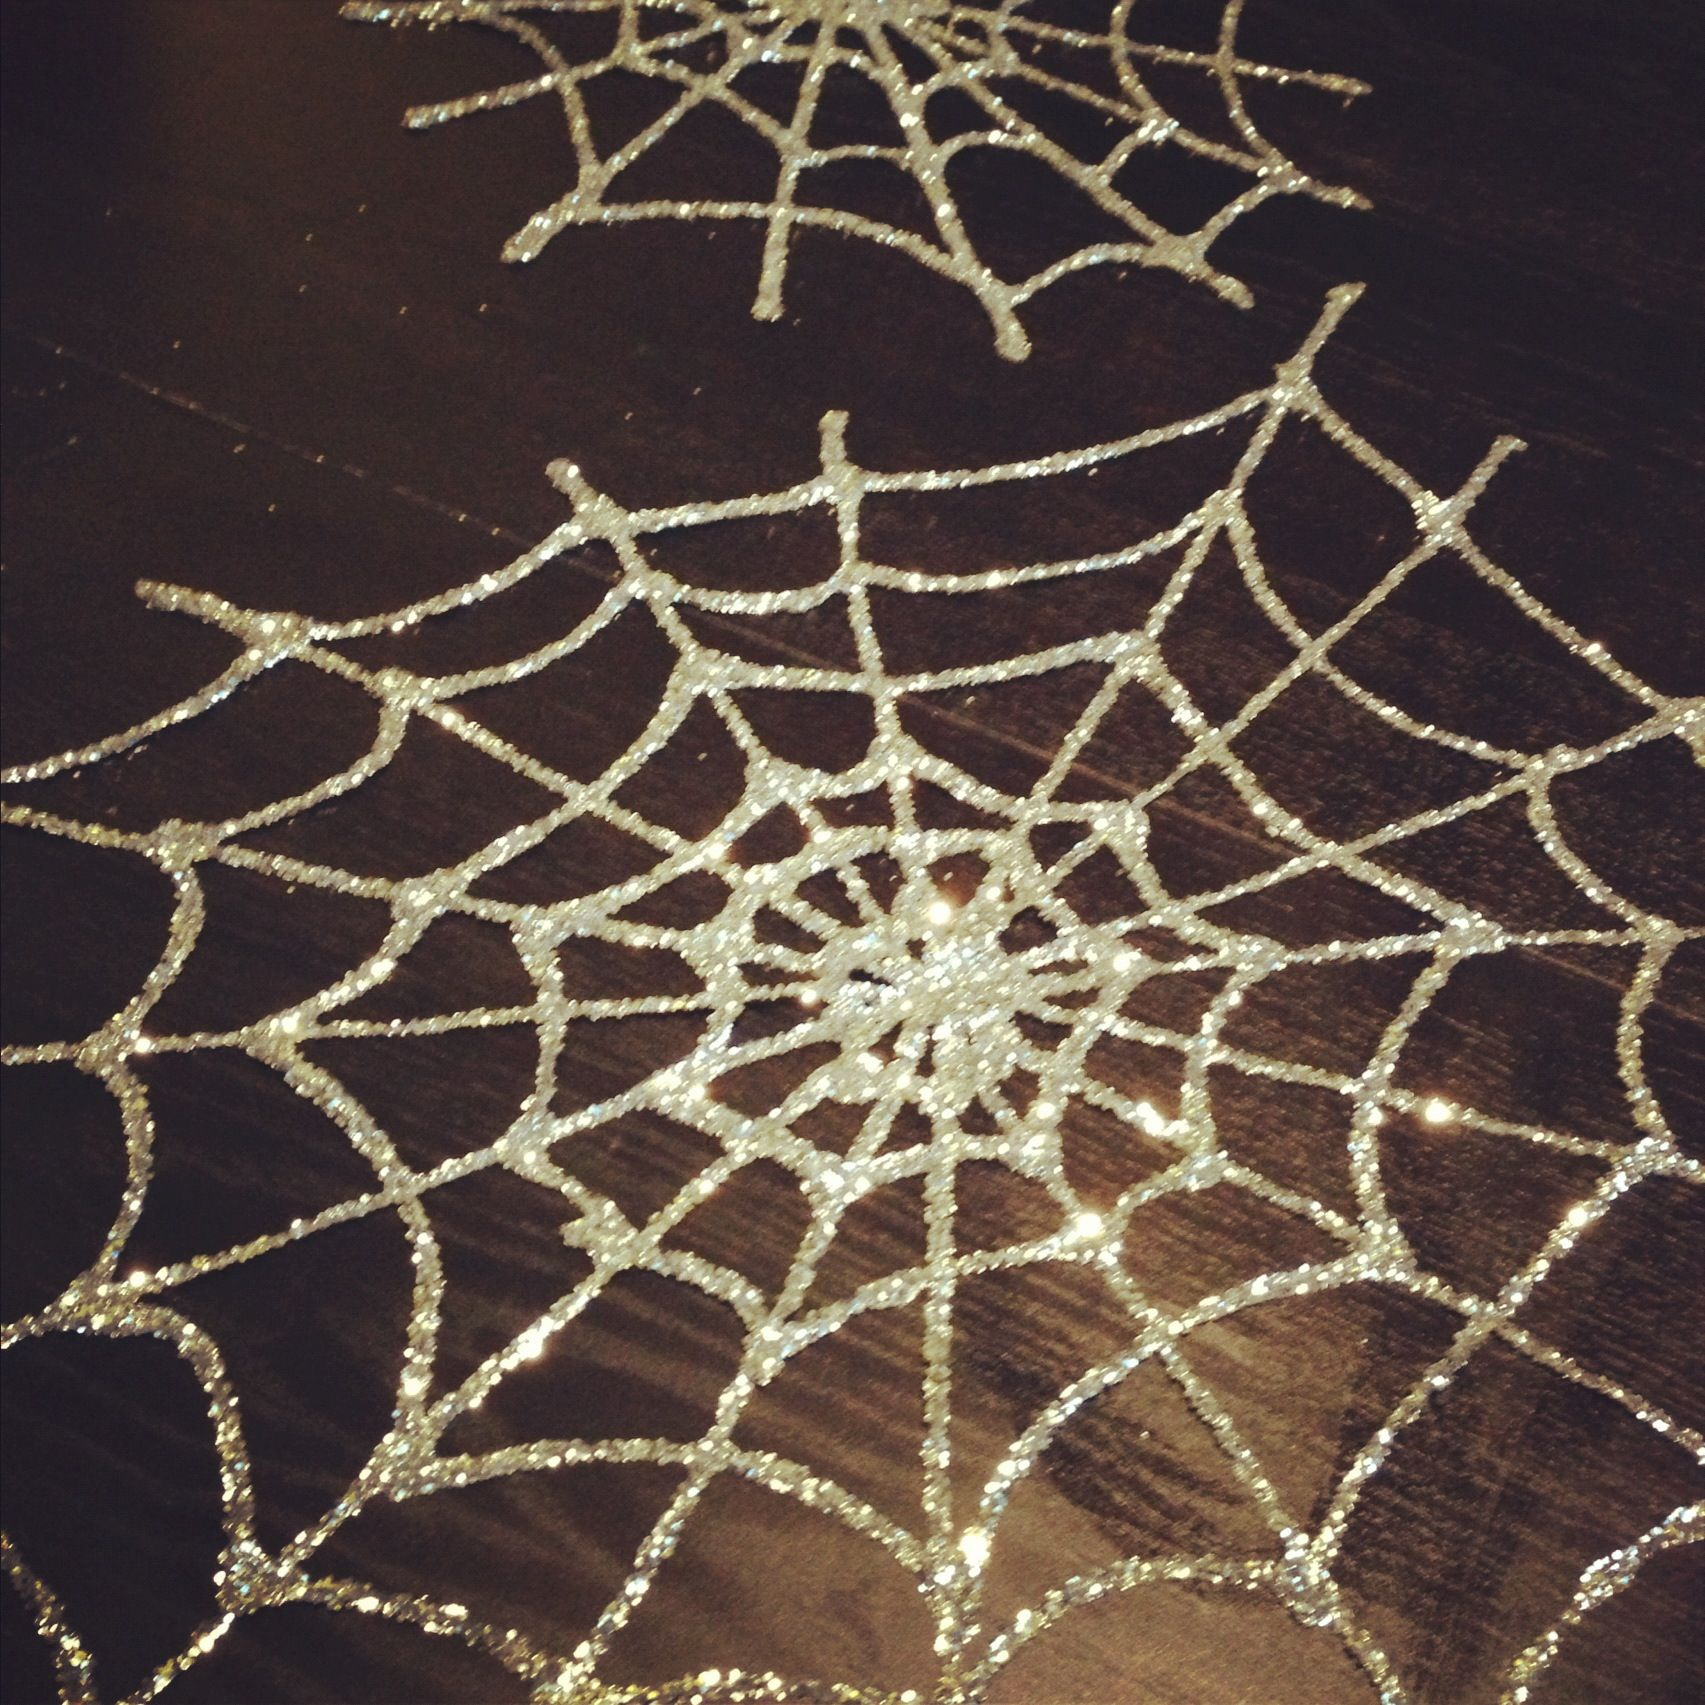 DIY Spider Web with glue and glitter on wax paper